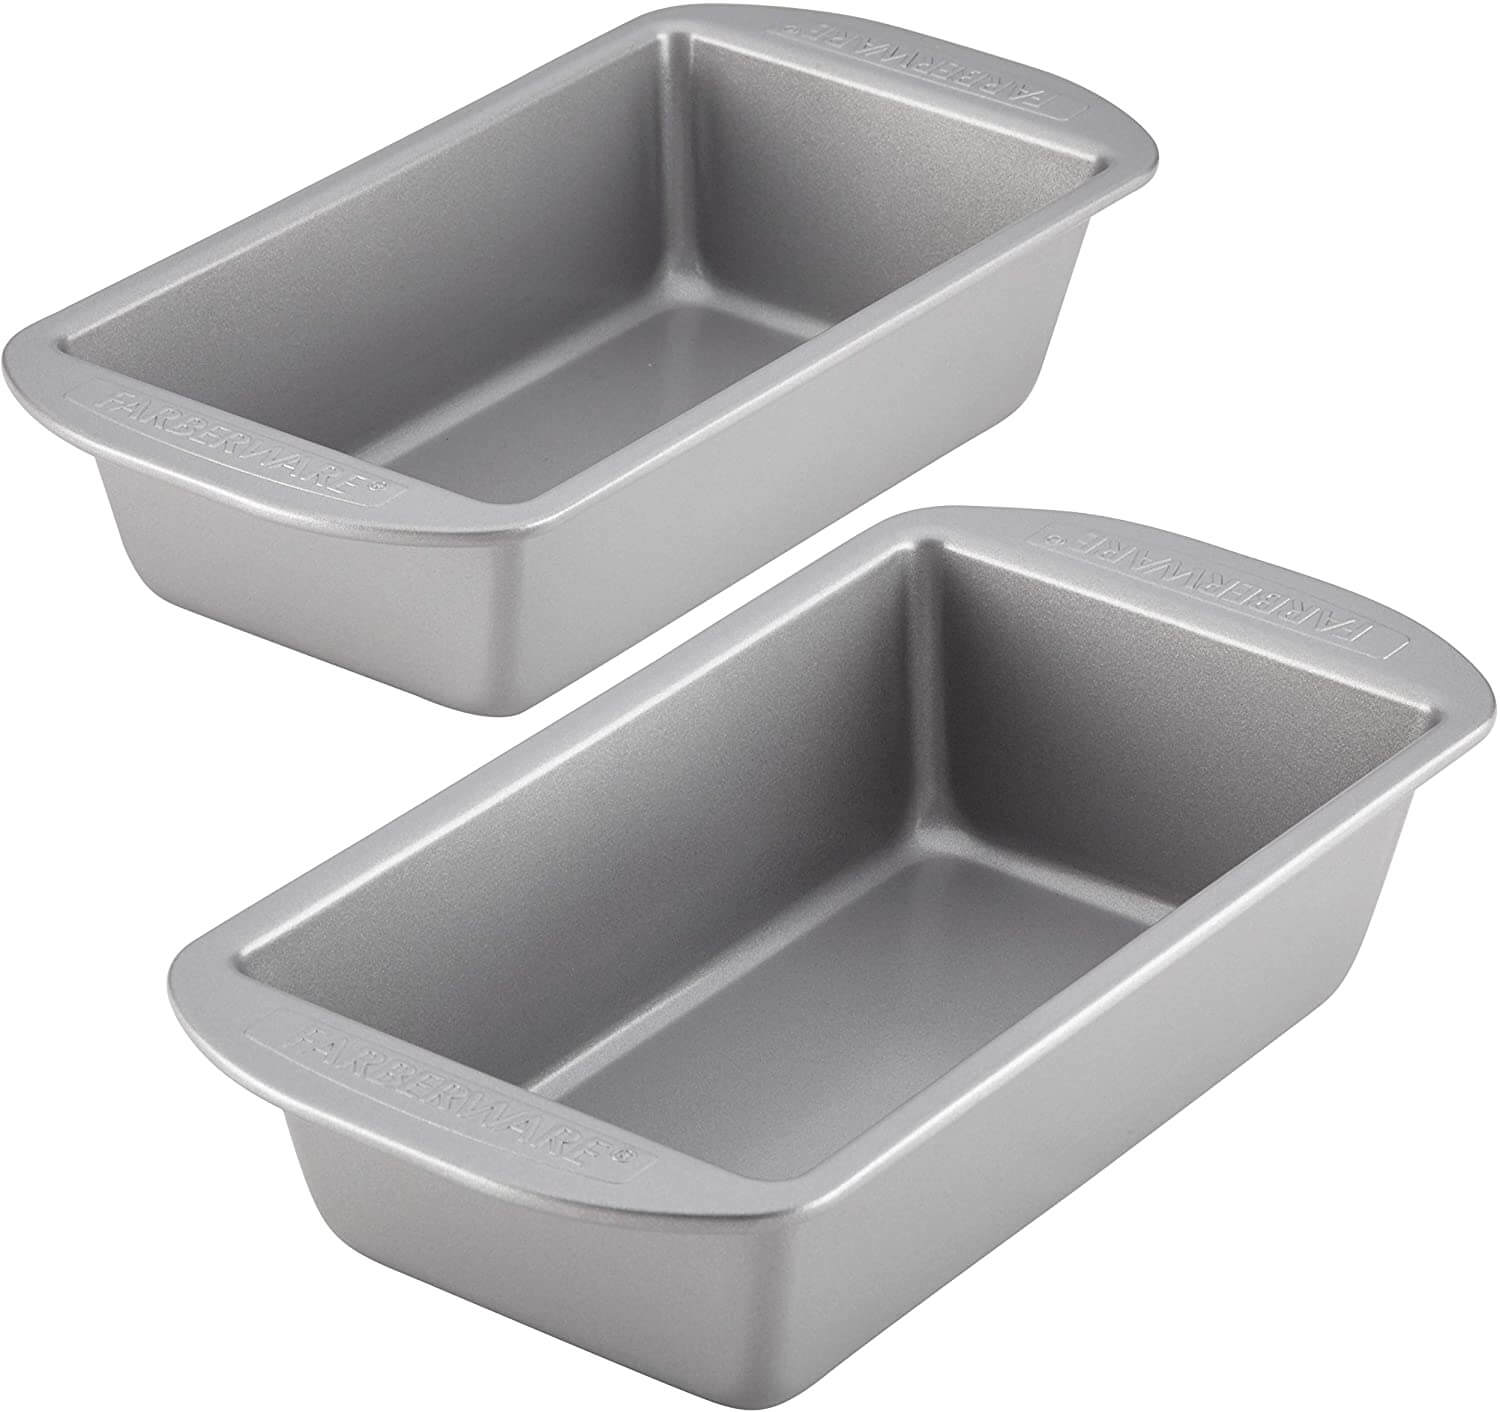 Farberware Bakeware Baking Loaf Pan Set